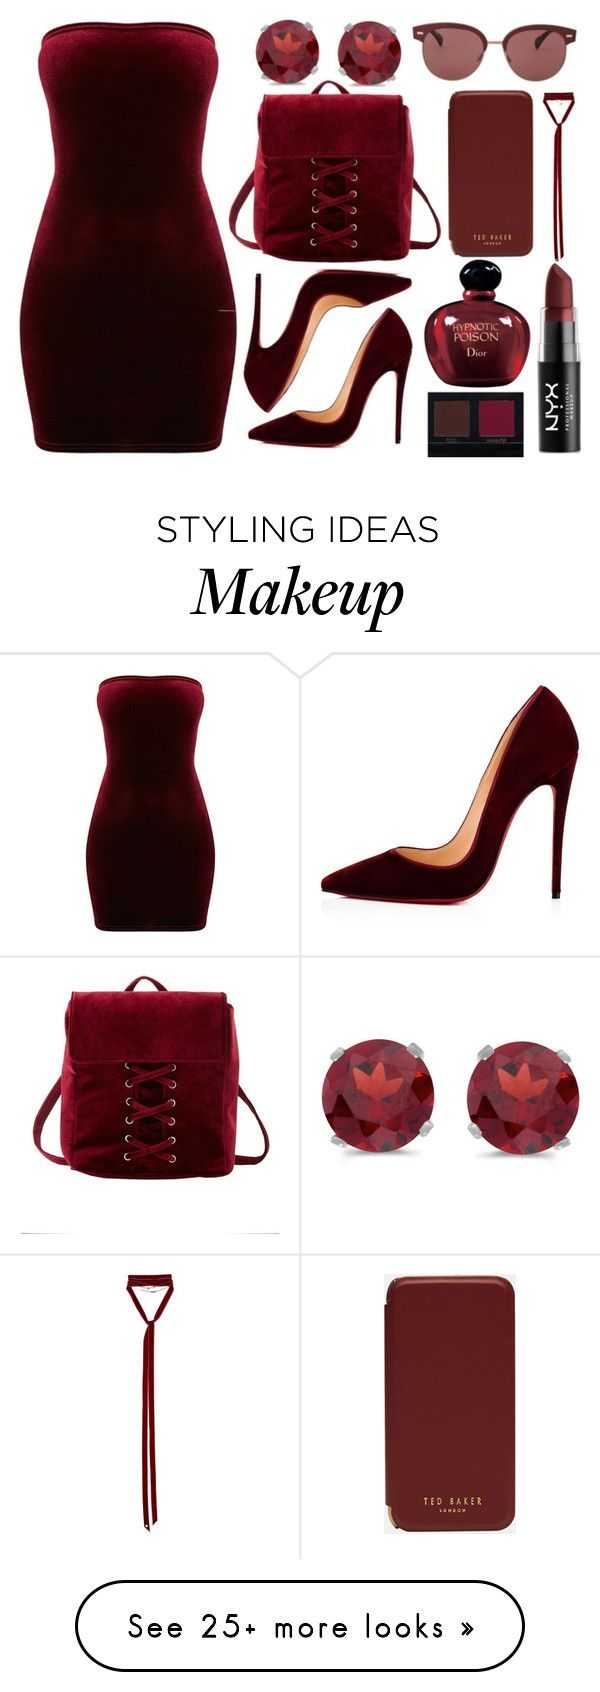 """Red velvet"" by lottie2004 on Polyvore featuring Shany, Christian Louboutin, Charlotte Russe, Ted Baker, Ann Demeulemeester, BillyTheTree, Oliver Peoples, Christian Dior, NYX and Huda Beauty"